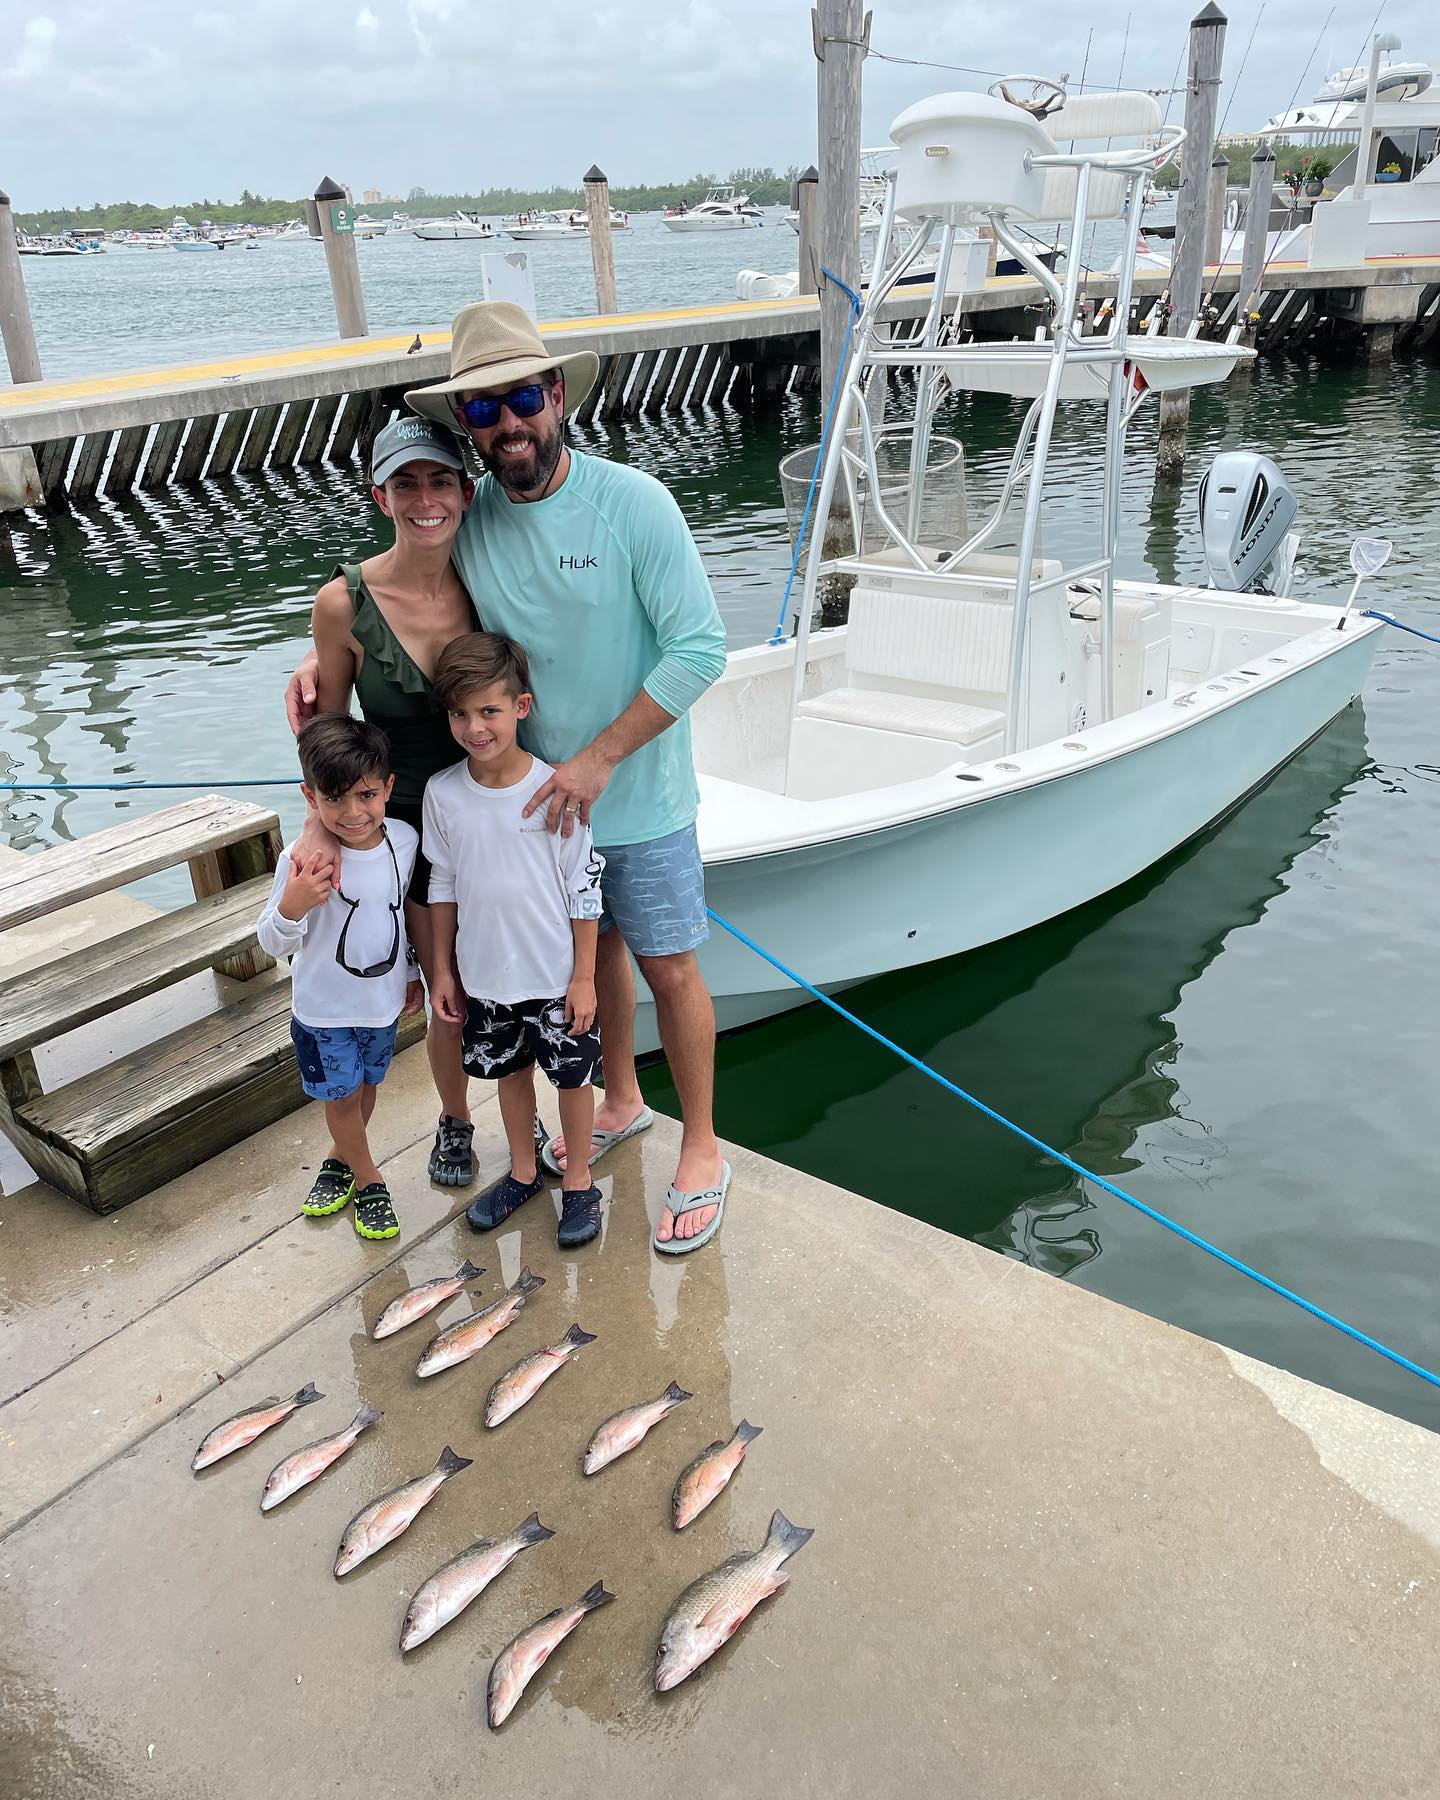 I took a beautiful family fishing today. They caught a pile of Mangrove Snappers up to 17 inches, a couple Jack Crevalles and Dad caught a Nurse Shark to end the day. The boys let go another 20 Snappers and everyone had a blast. #GOHARDFISHING #ITRYHARD #greatfamily #miamibeach #charterfishing @starbrite_com @pennfishing @hookerelectricreels @captharrysfishingsupply thank you @sachi_acosta and fam!